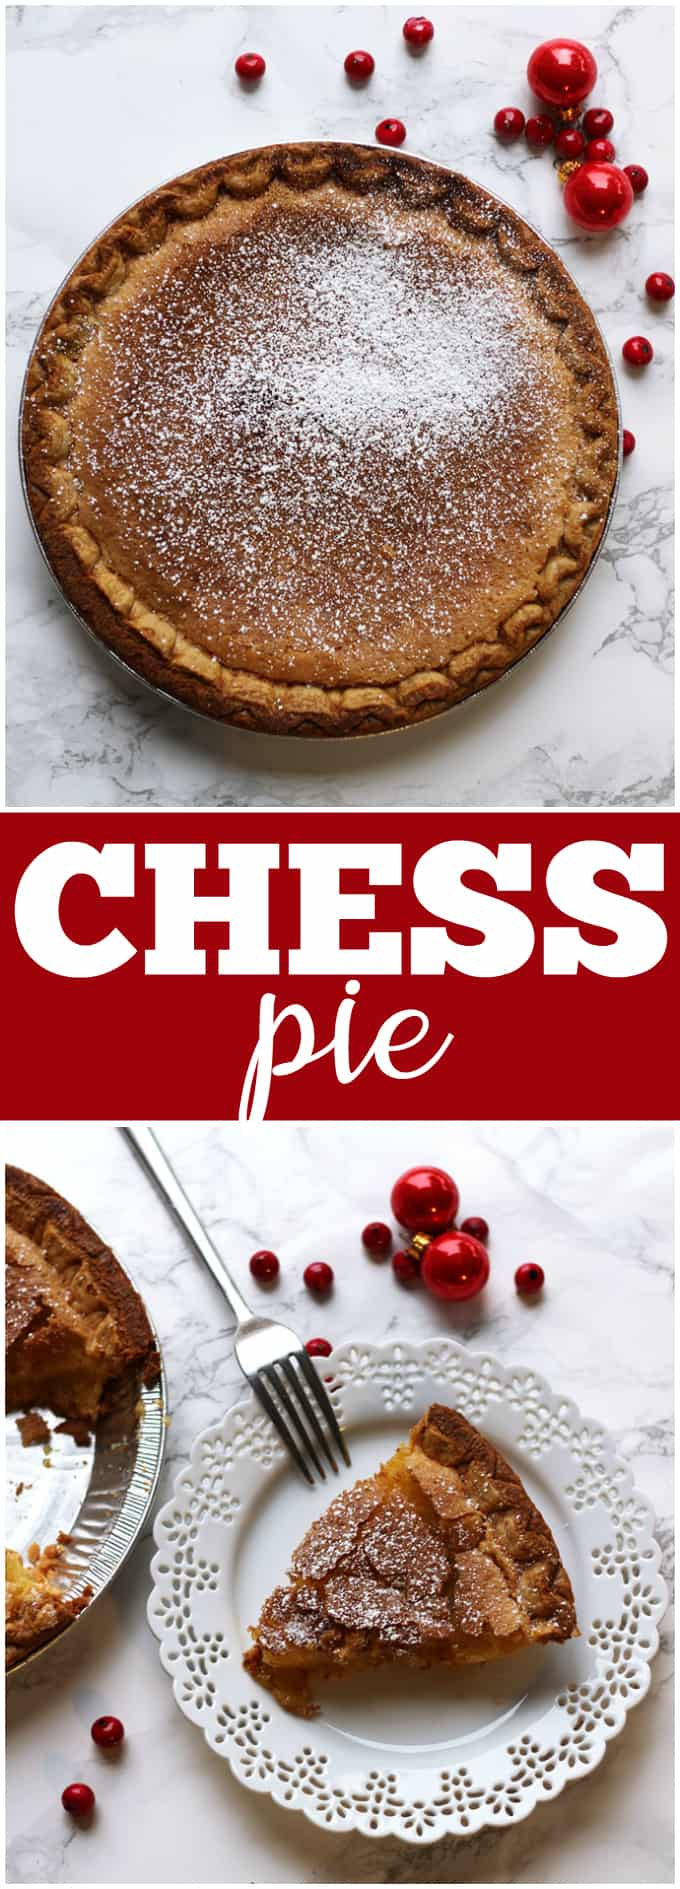 Chess Pie- Rich, sweet and timeless. Everyone is guaranteed to love this Southern classic pie!